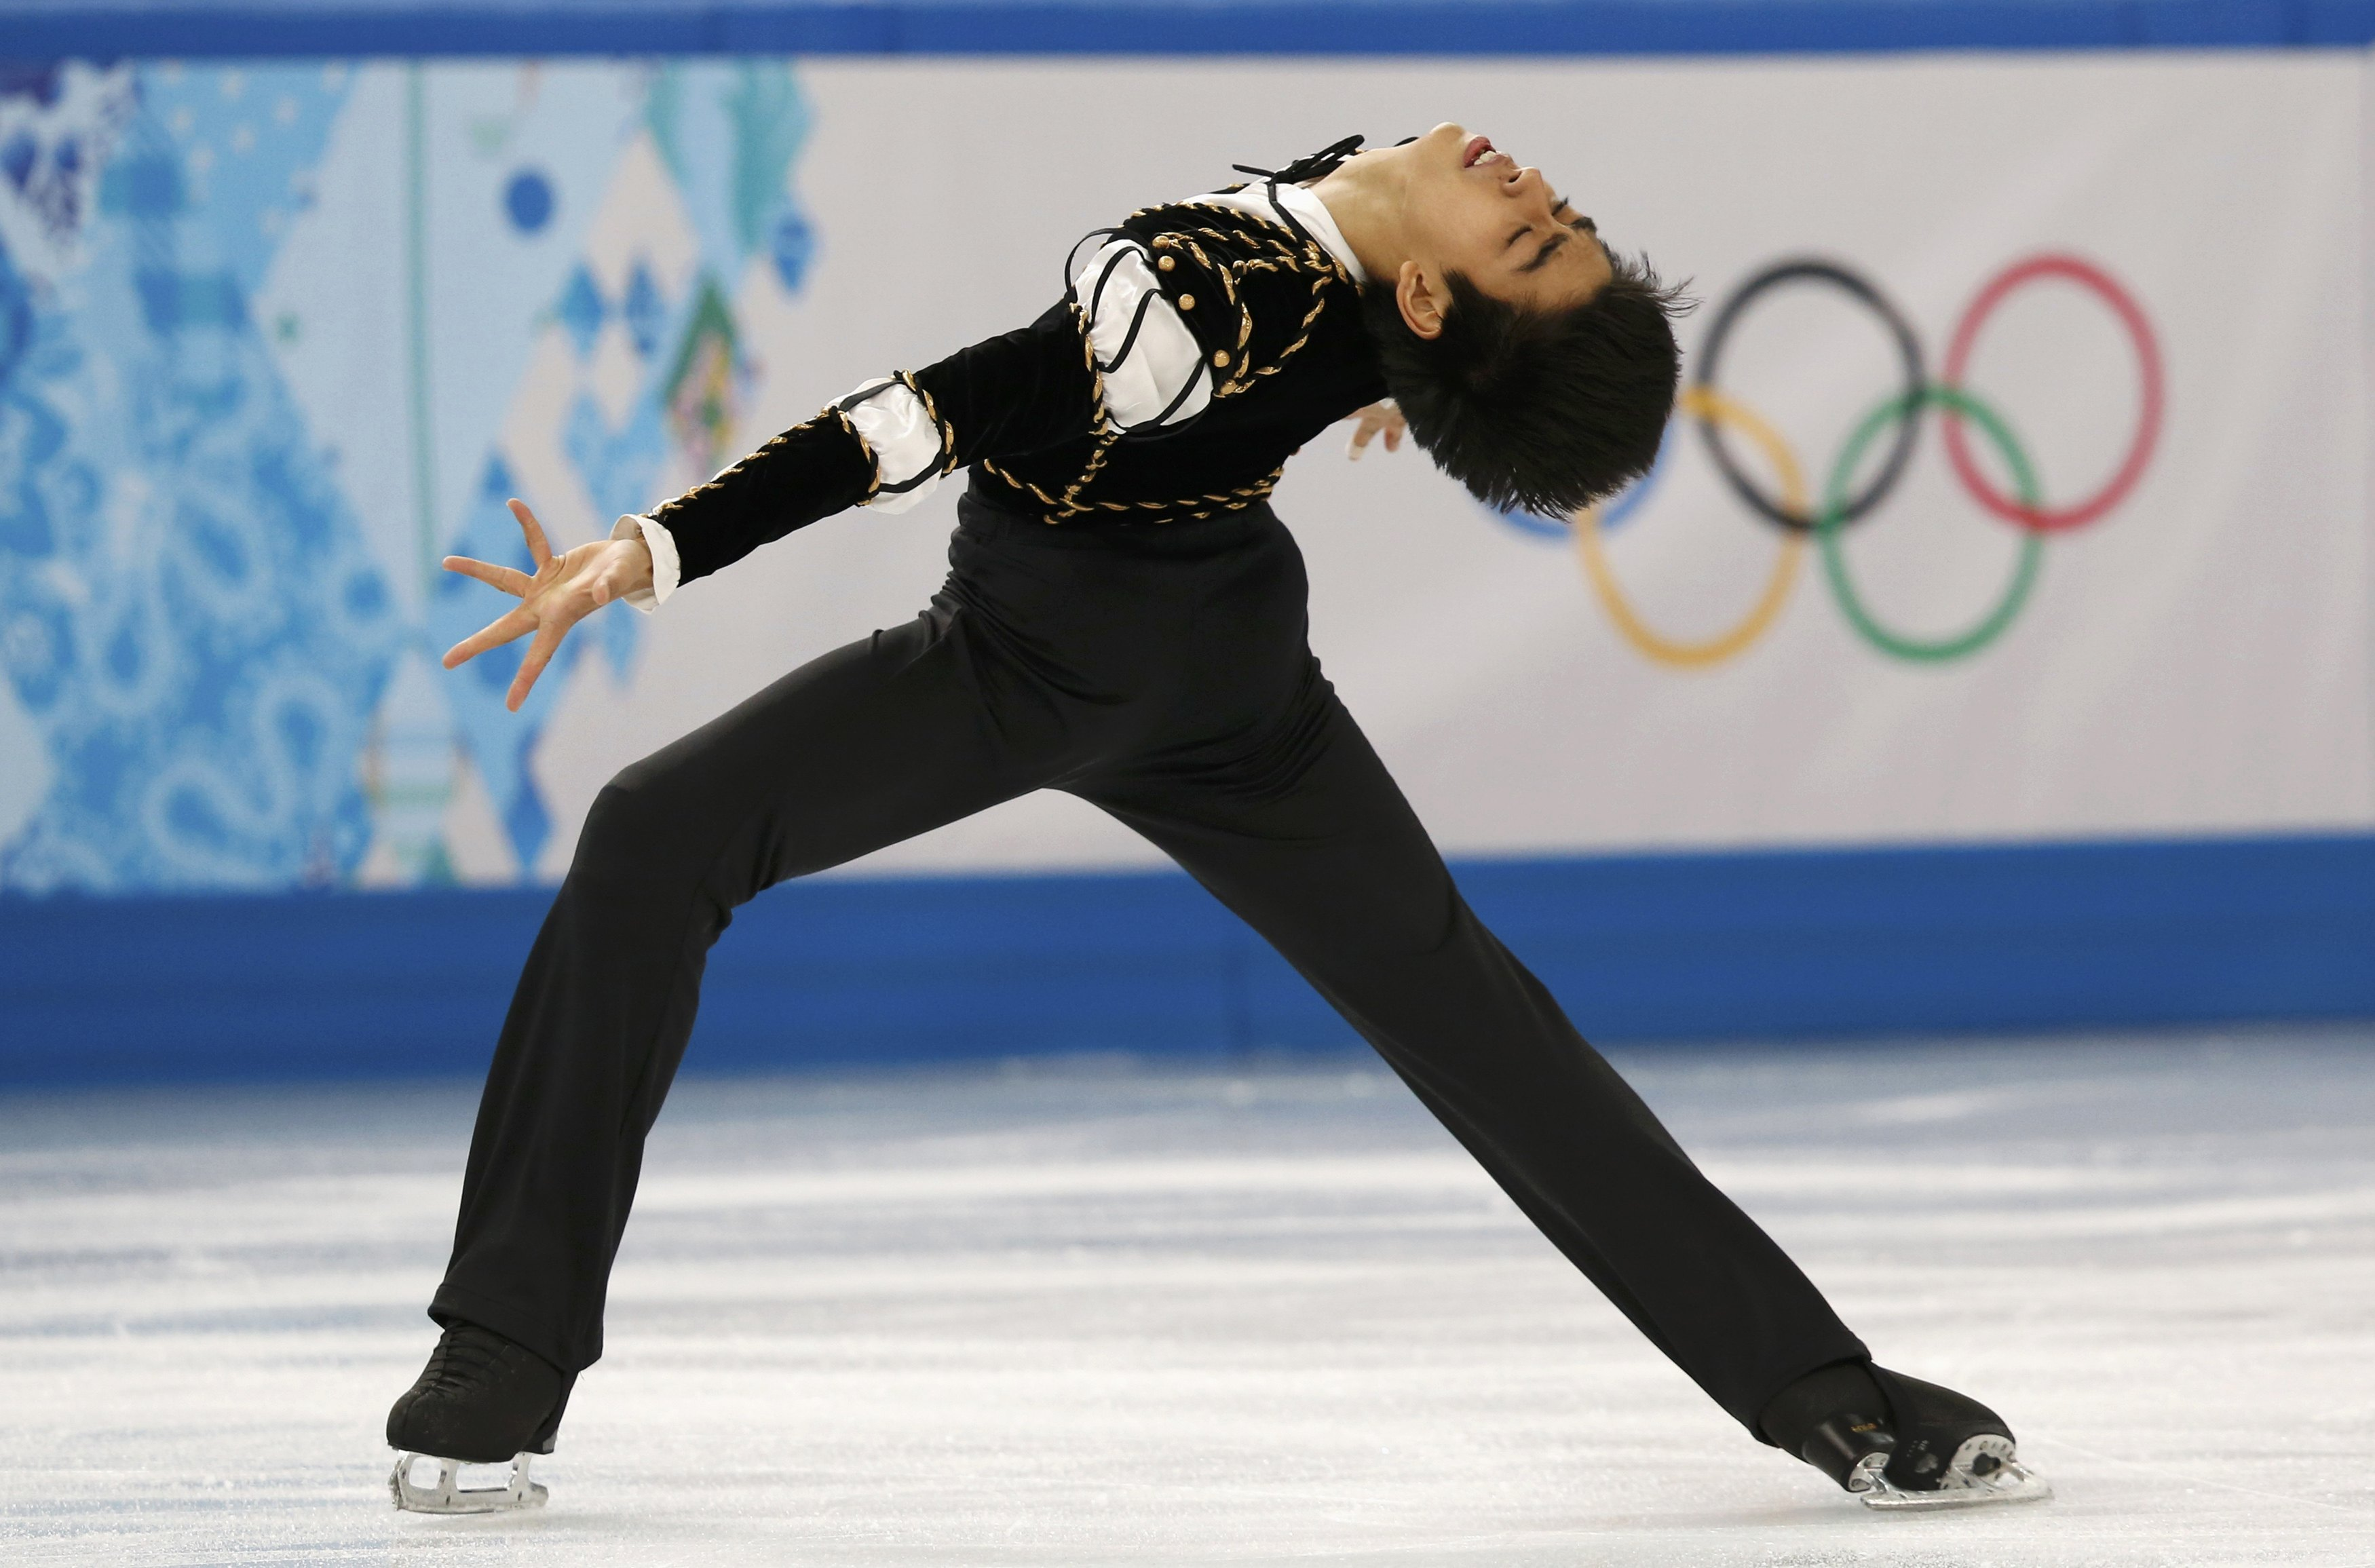 2014_02_14_00_11_20 - Pinoy Olympic figure skater now into medal round - Olympic Games